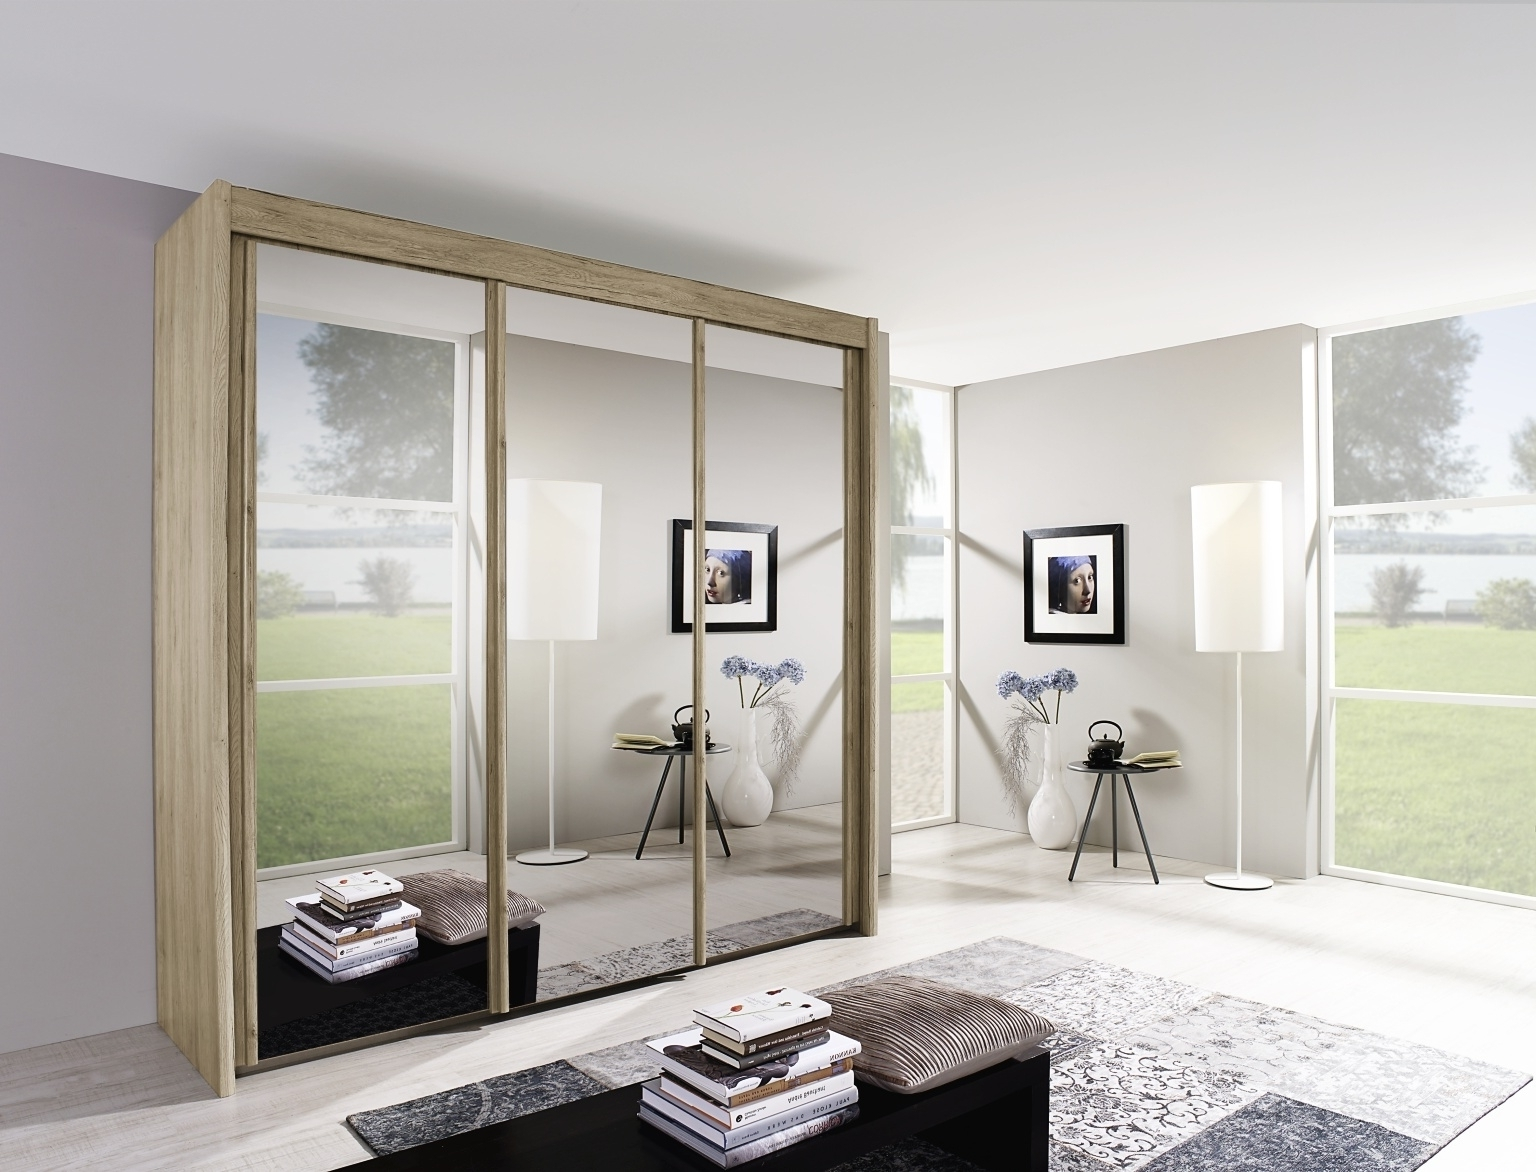 Most Recently Released Imperial Wardrobes Inside Buy Rauch Imperial Sliding Wardrobe – Front With Mirror – Cfs Uk (View 11 of 15)